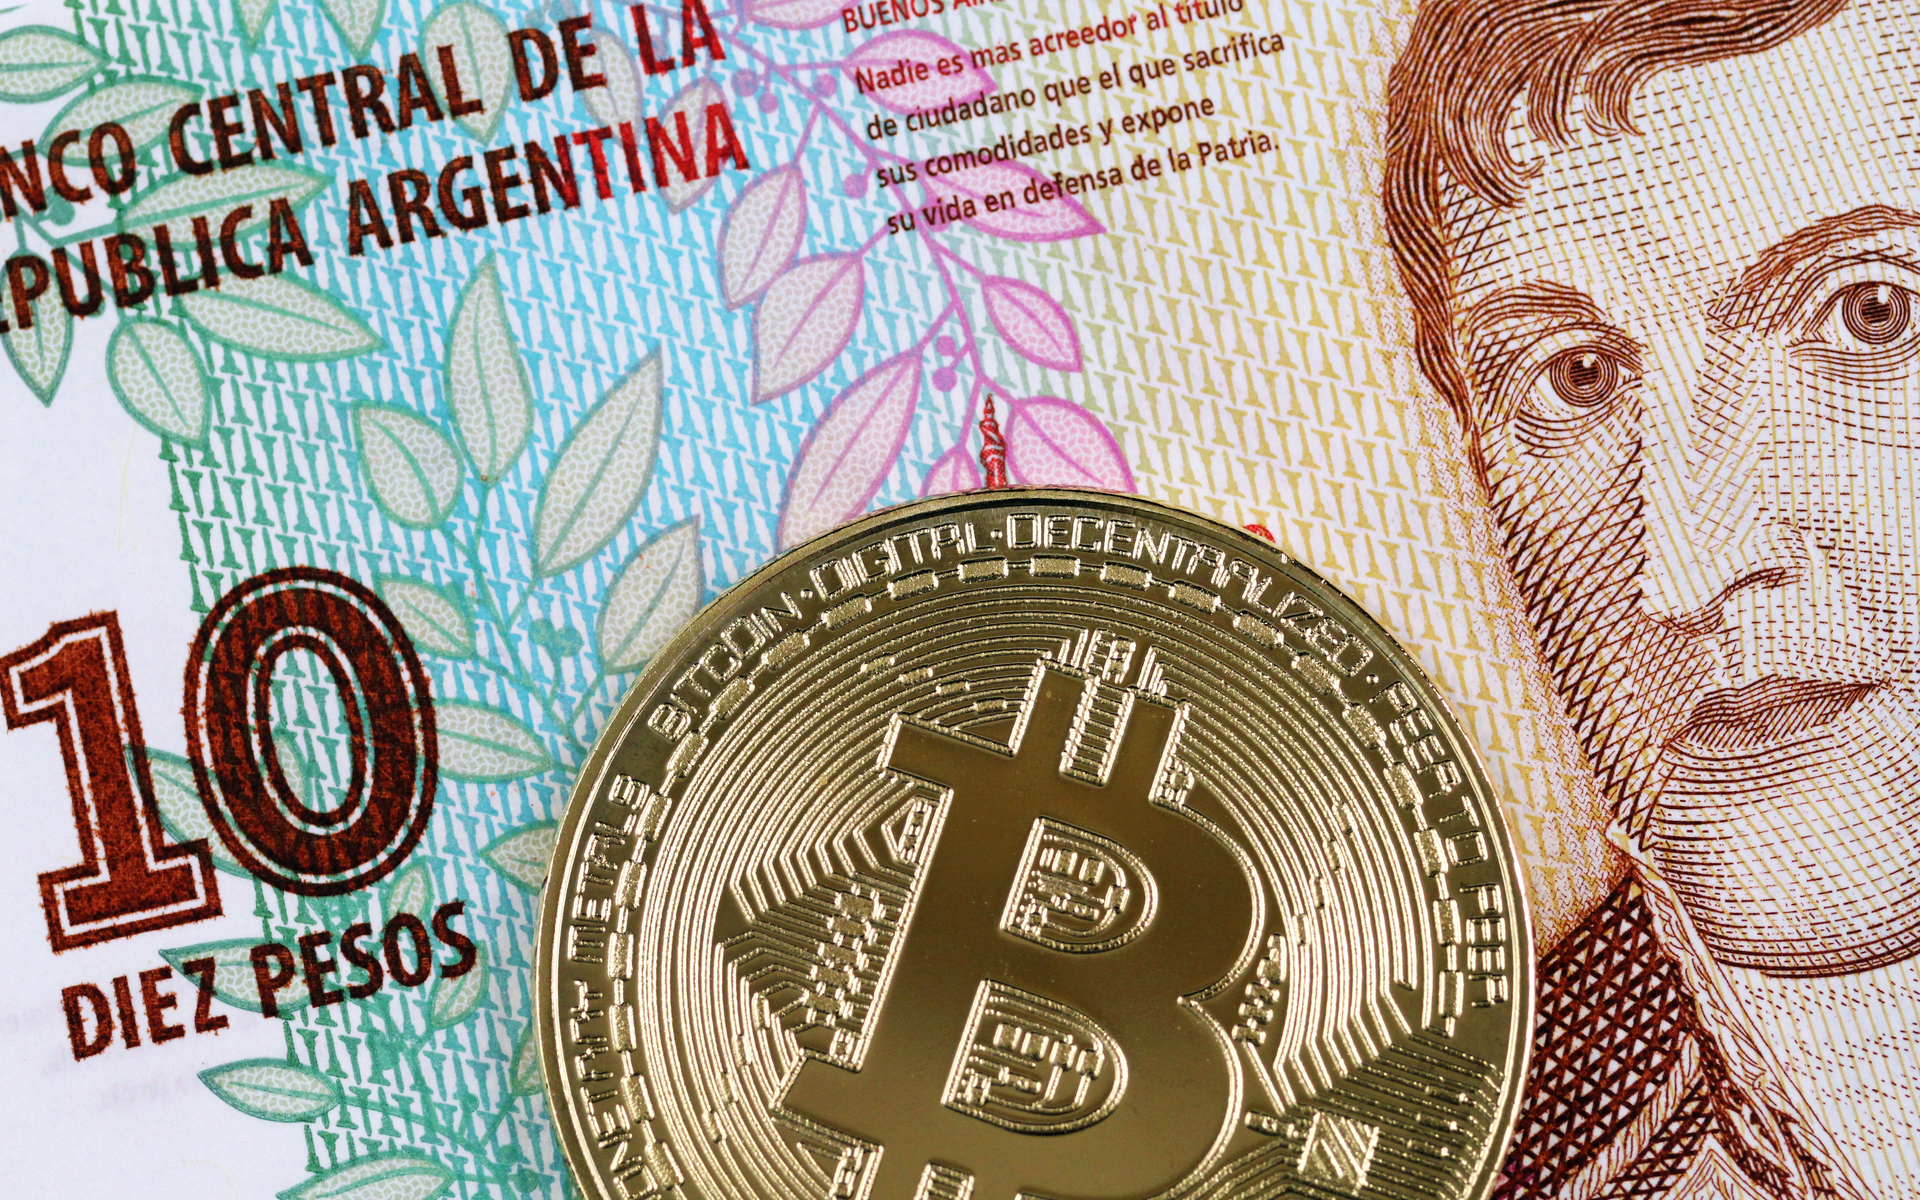 Bitcoin price hits $12,000 on Argentina exchange